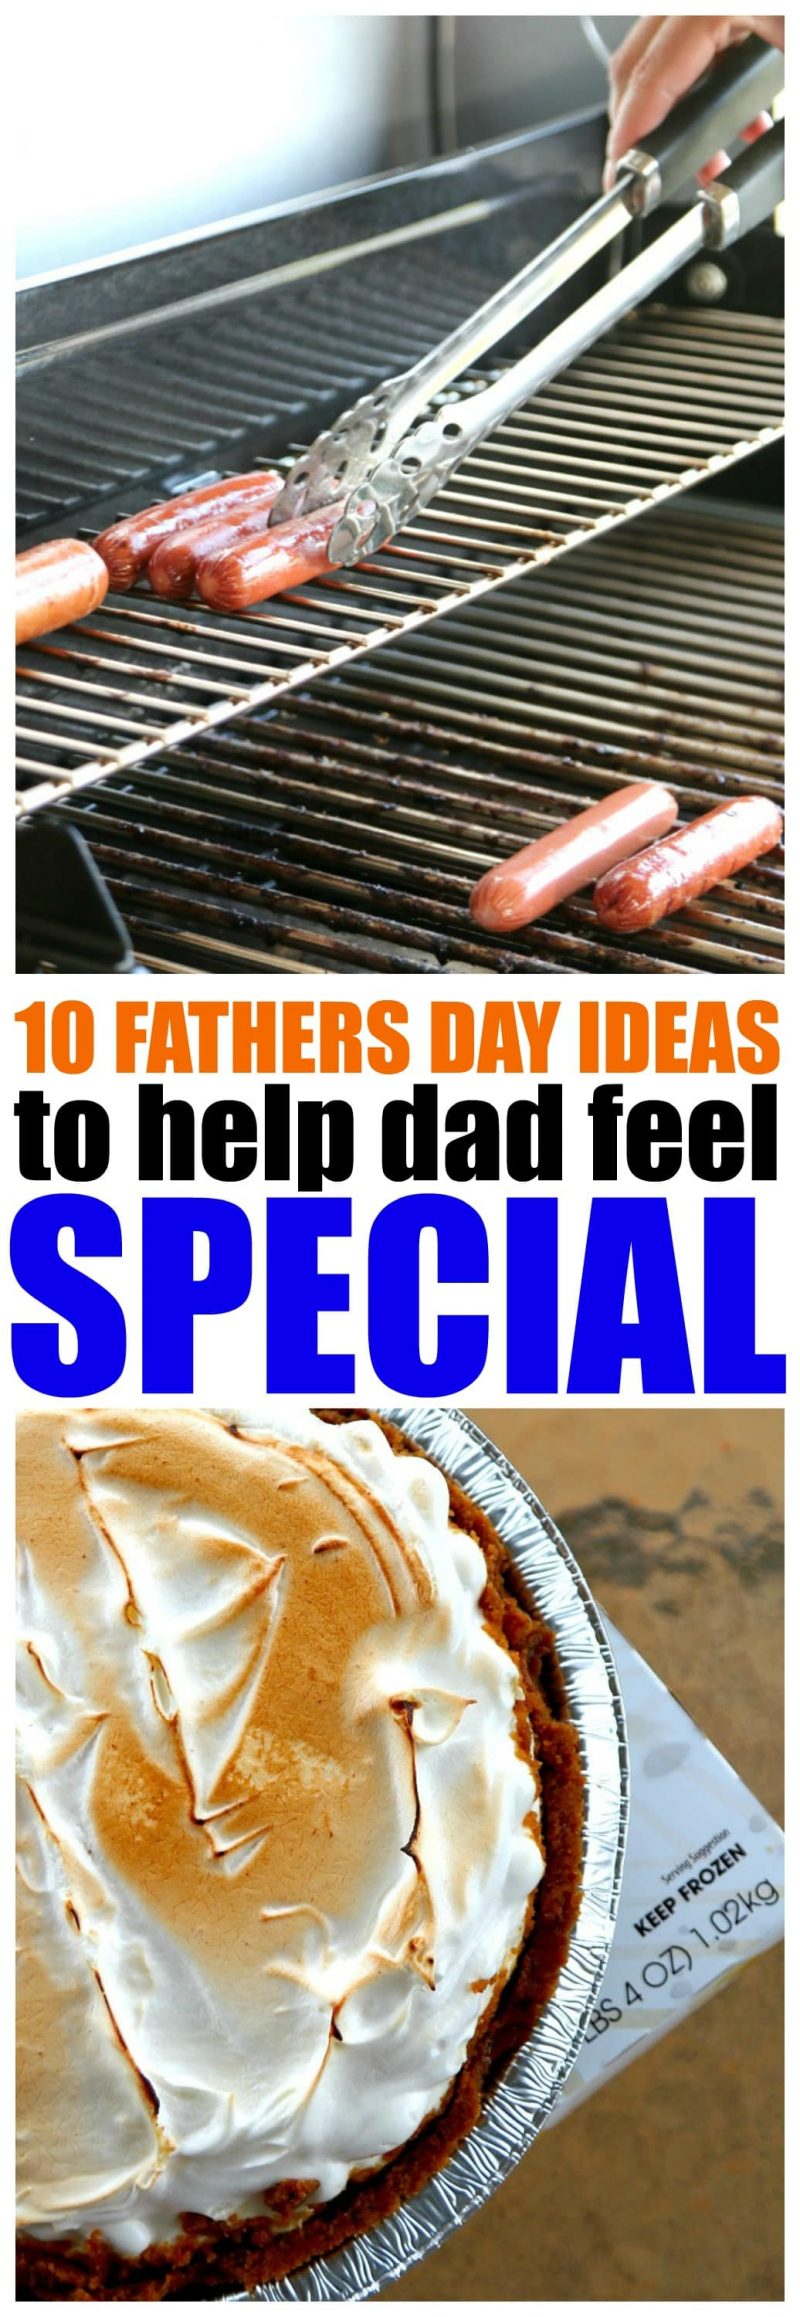 10 Fathers Day Ideas to Help Dad Feel special this fathers day -